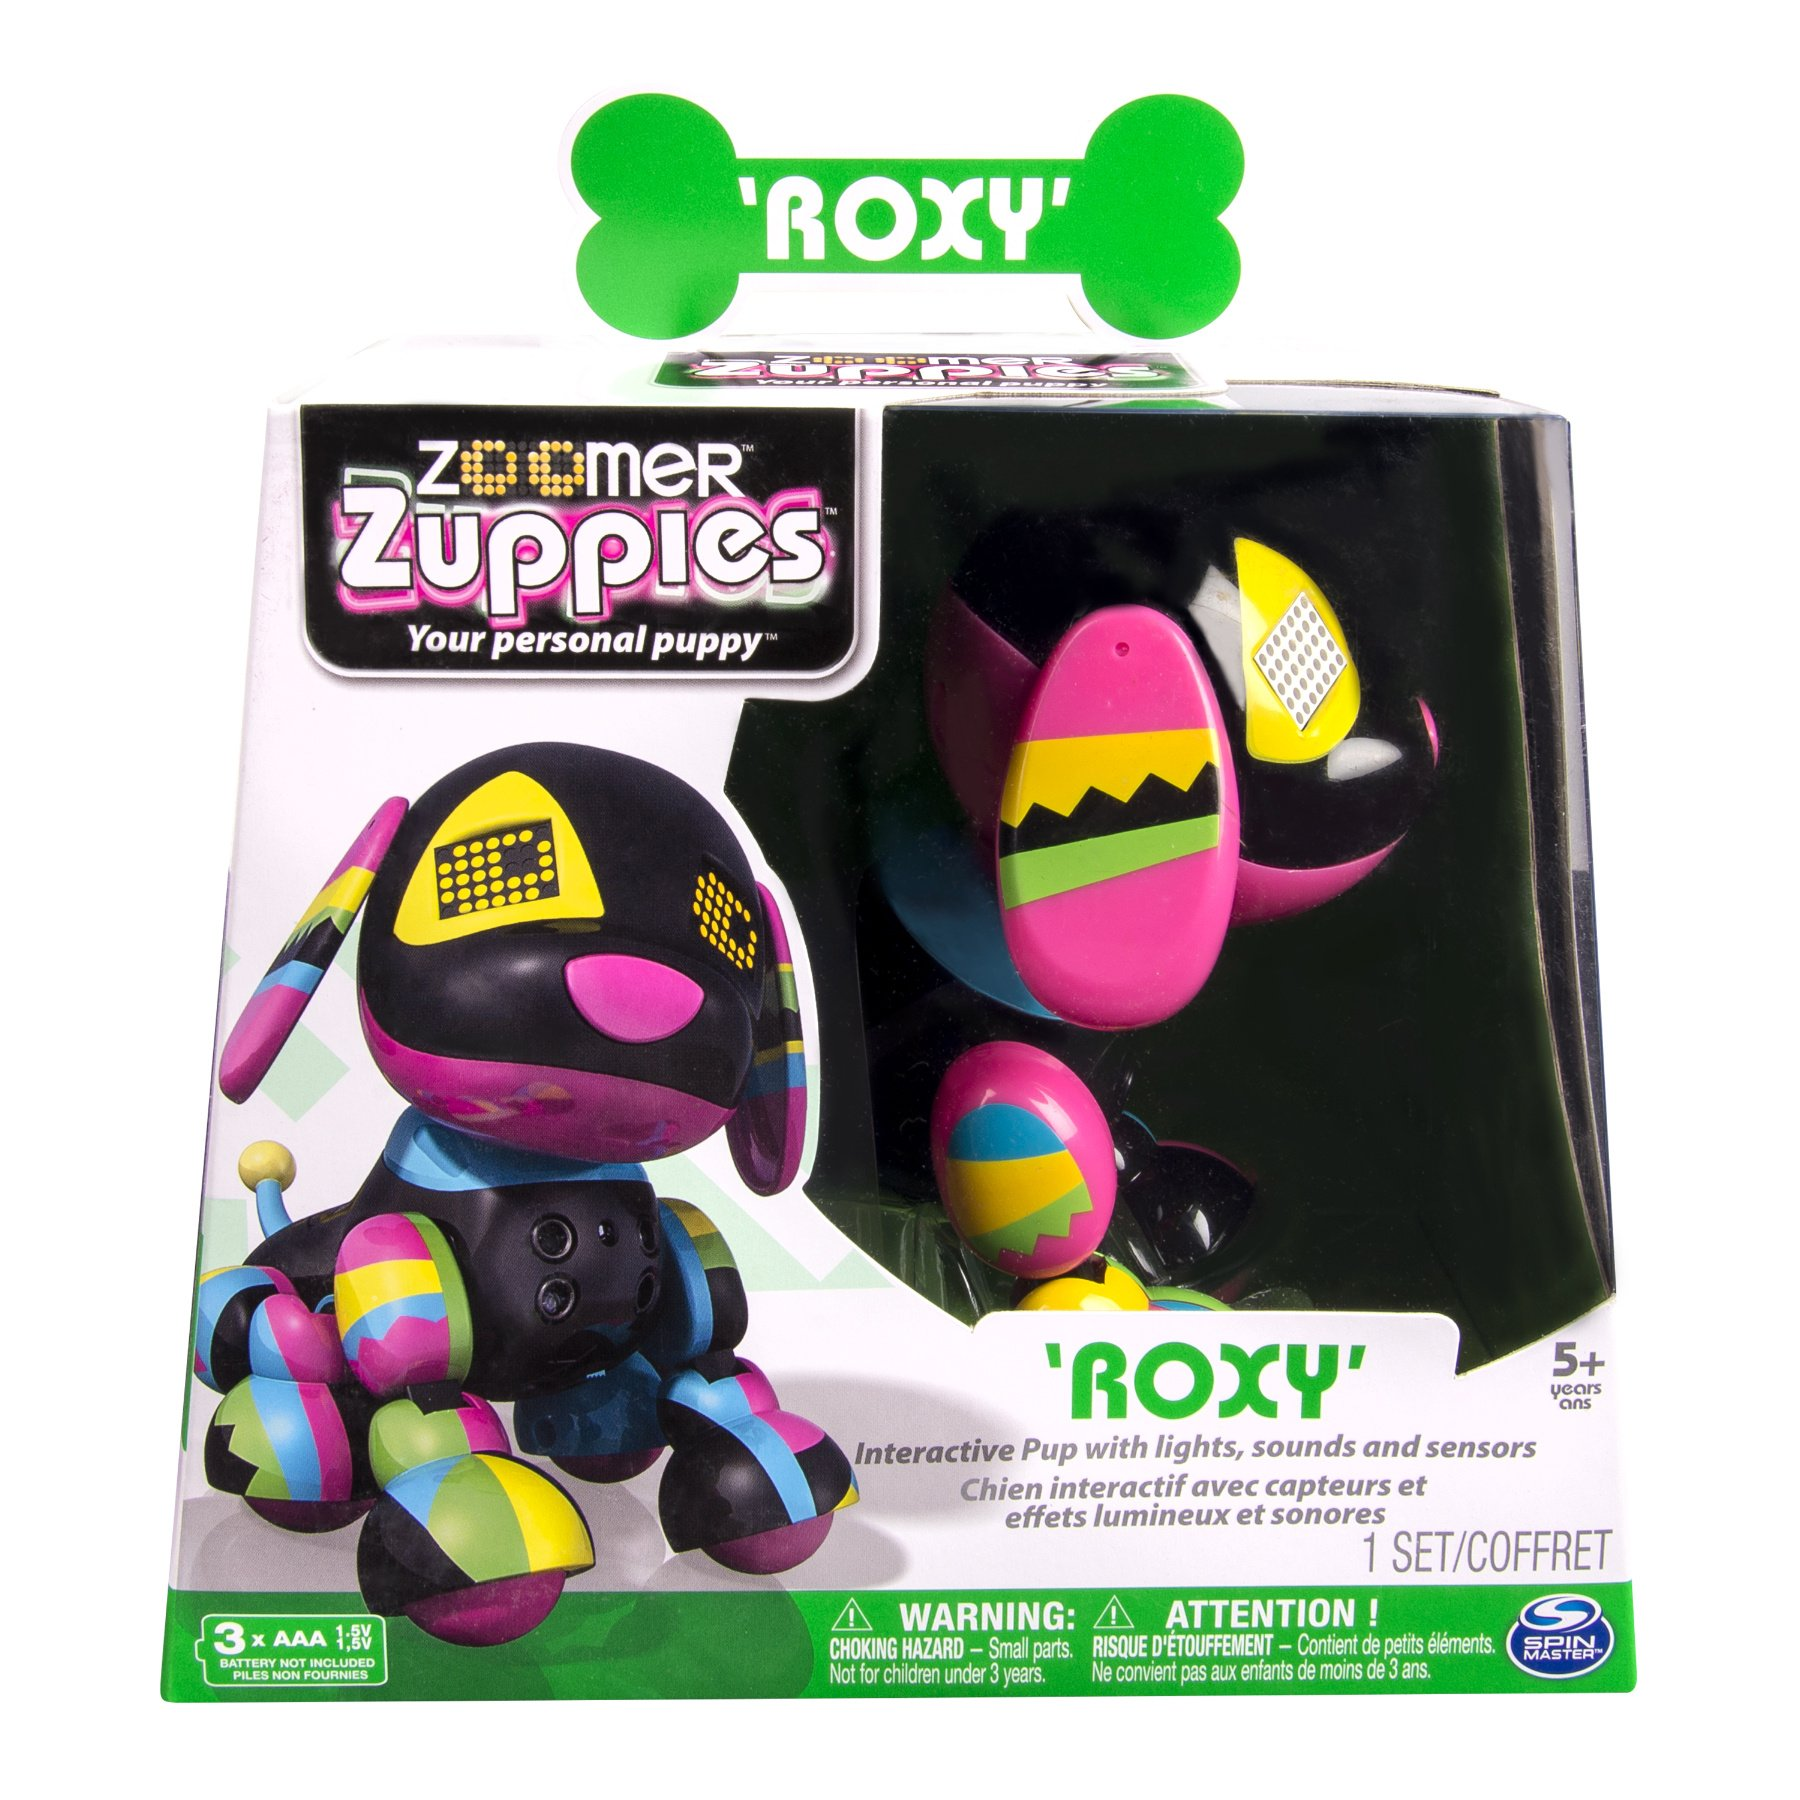 Zoomer Zuppies Interactive Puppy - Roxy by Zoomer (Image #5)